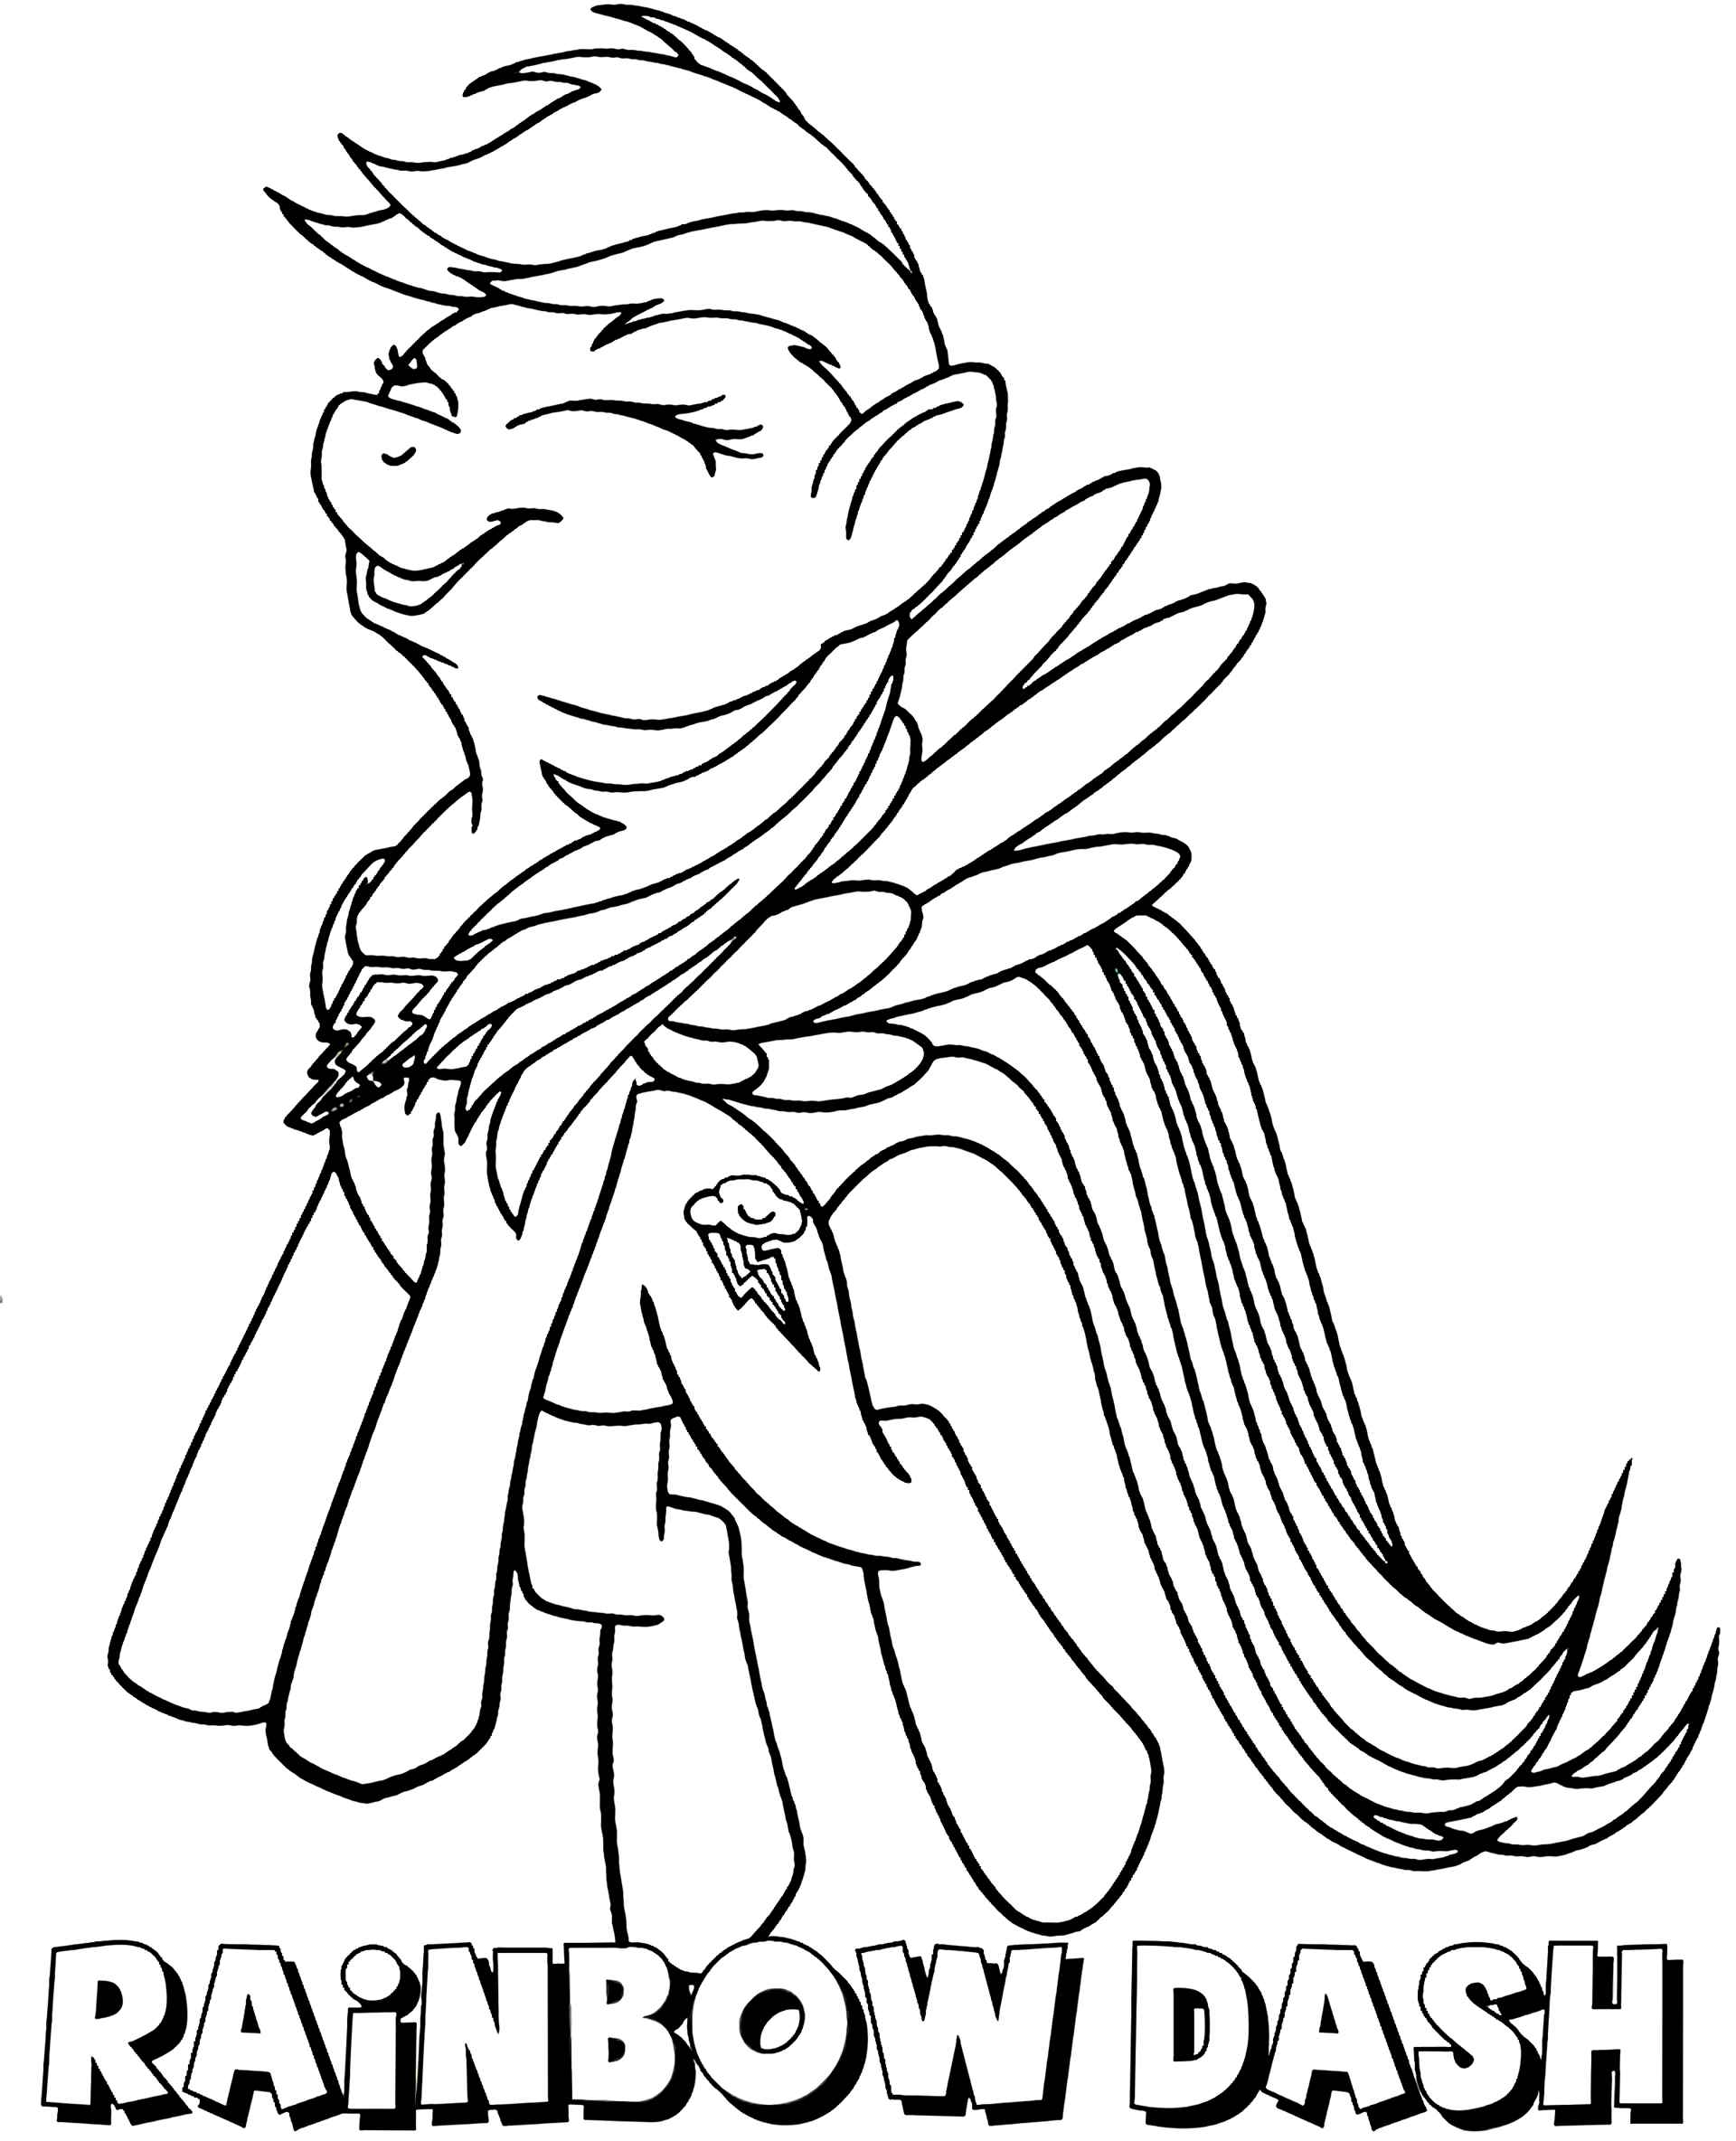 Funny Rainbowdesh With The Name Coloring Page